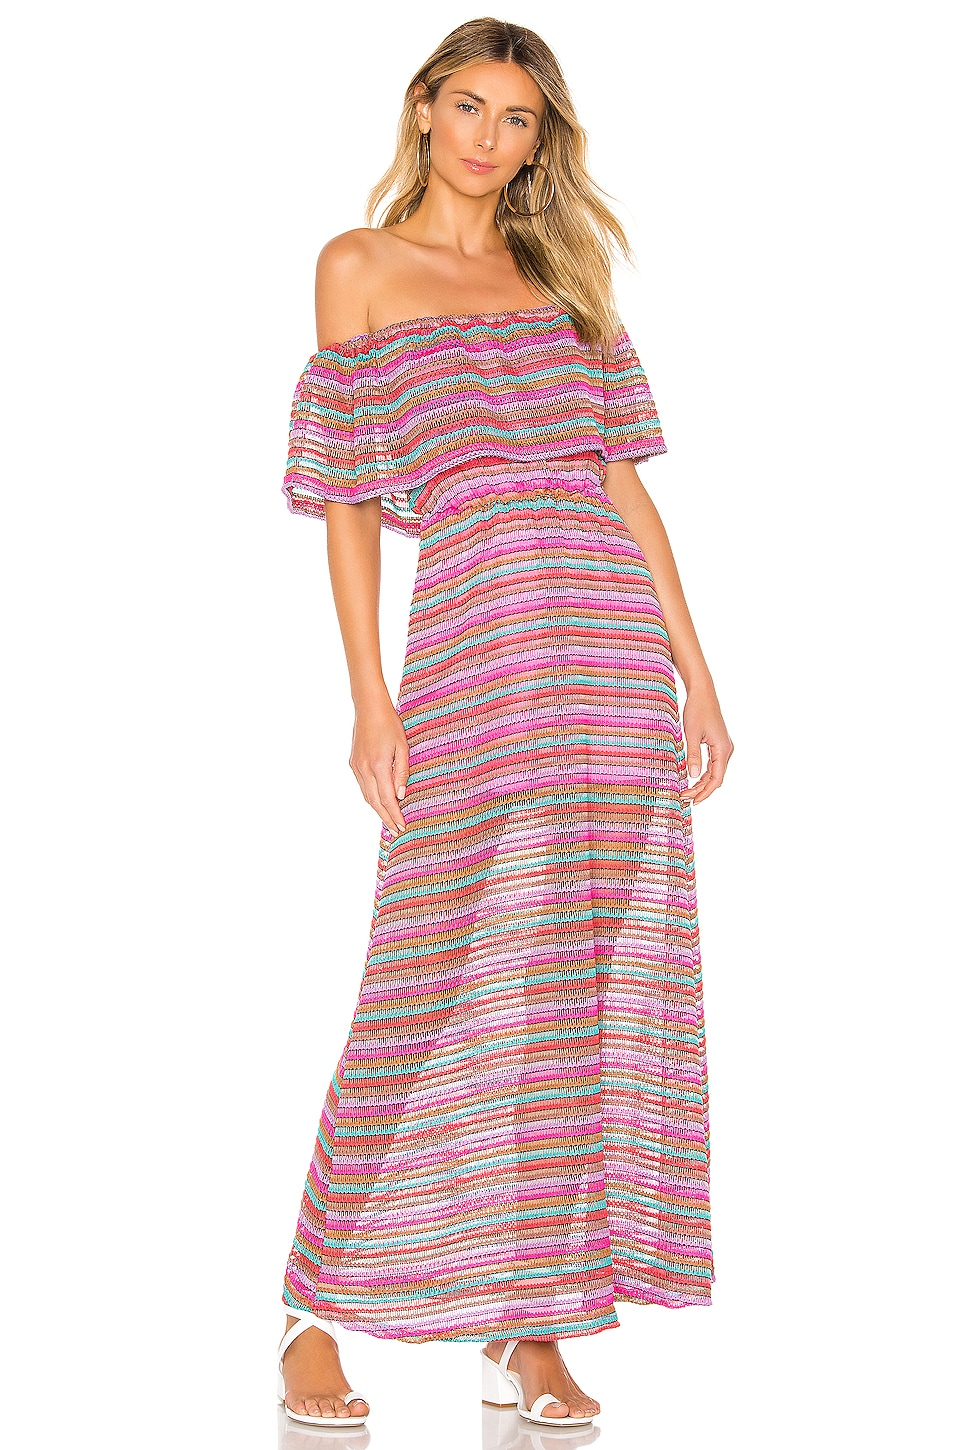 House of Harlow 1960 X REVOLVE Dina Dress in Multi